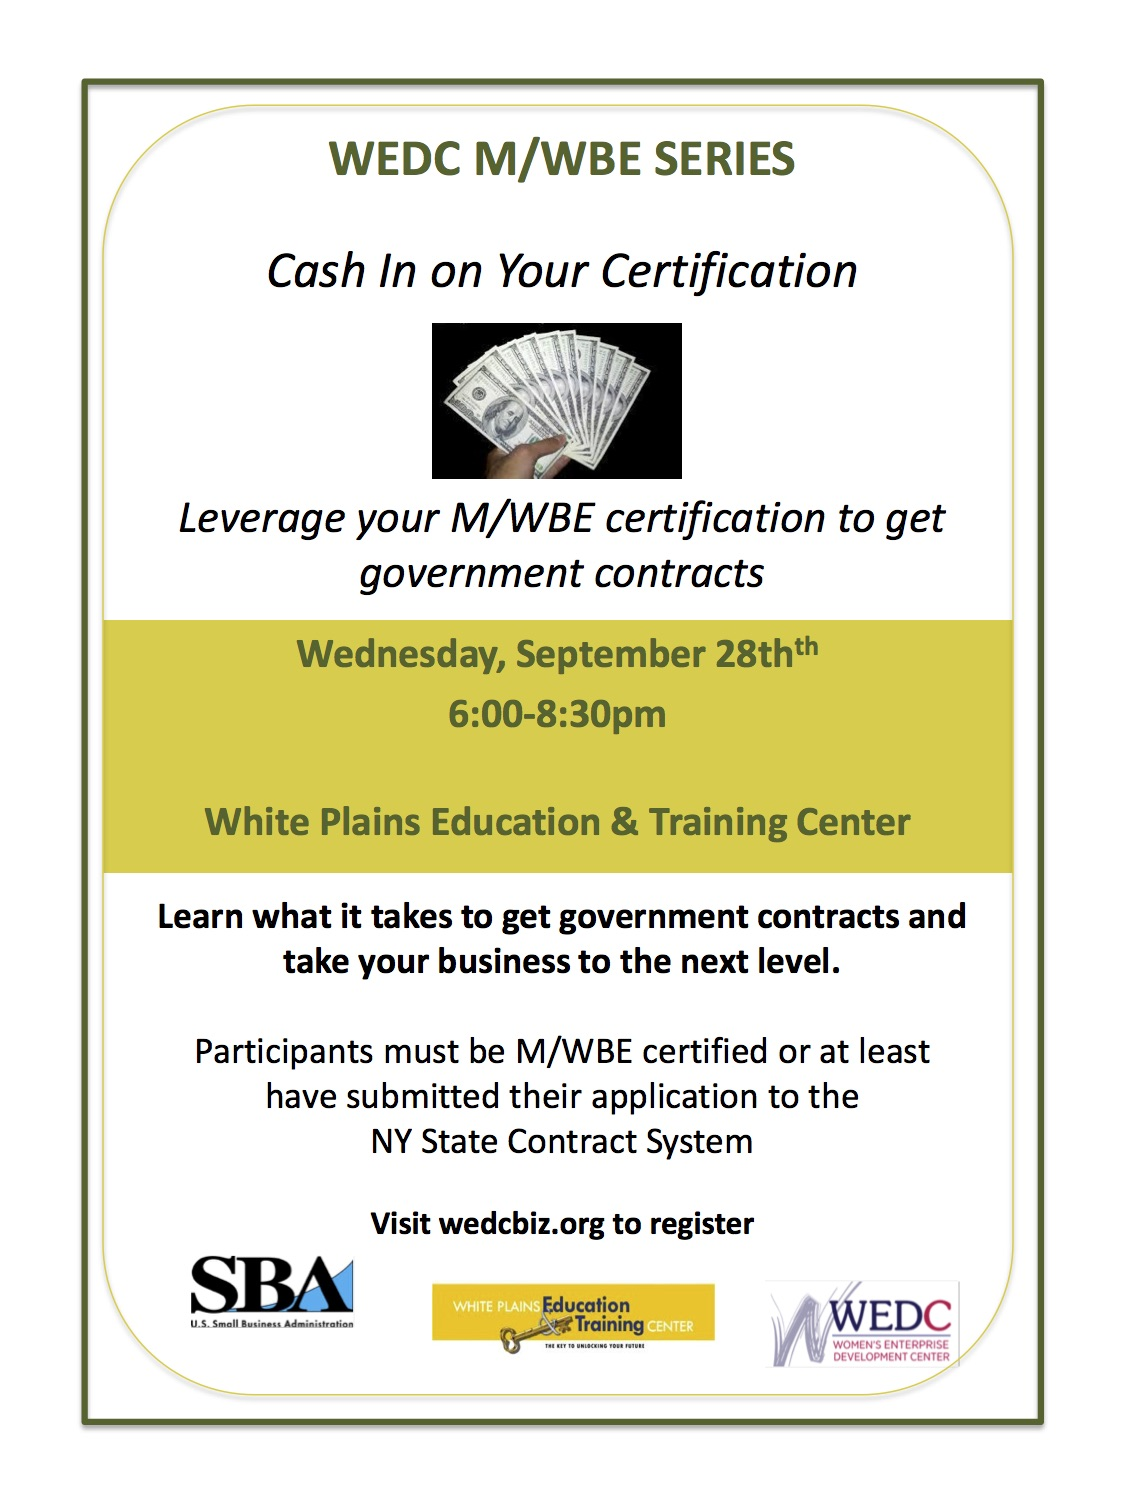 cashin-on-your-mwbe-certification